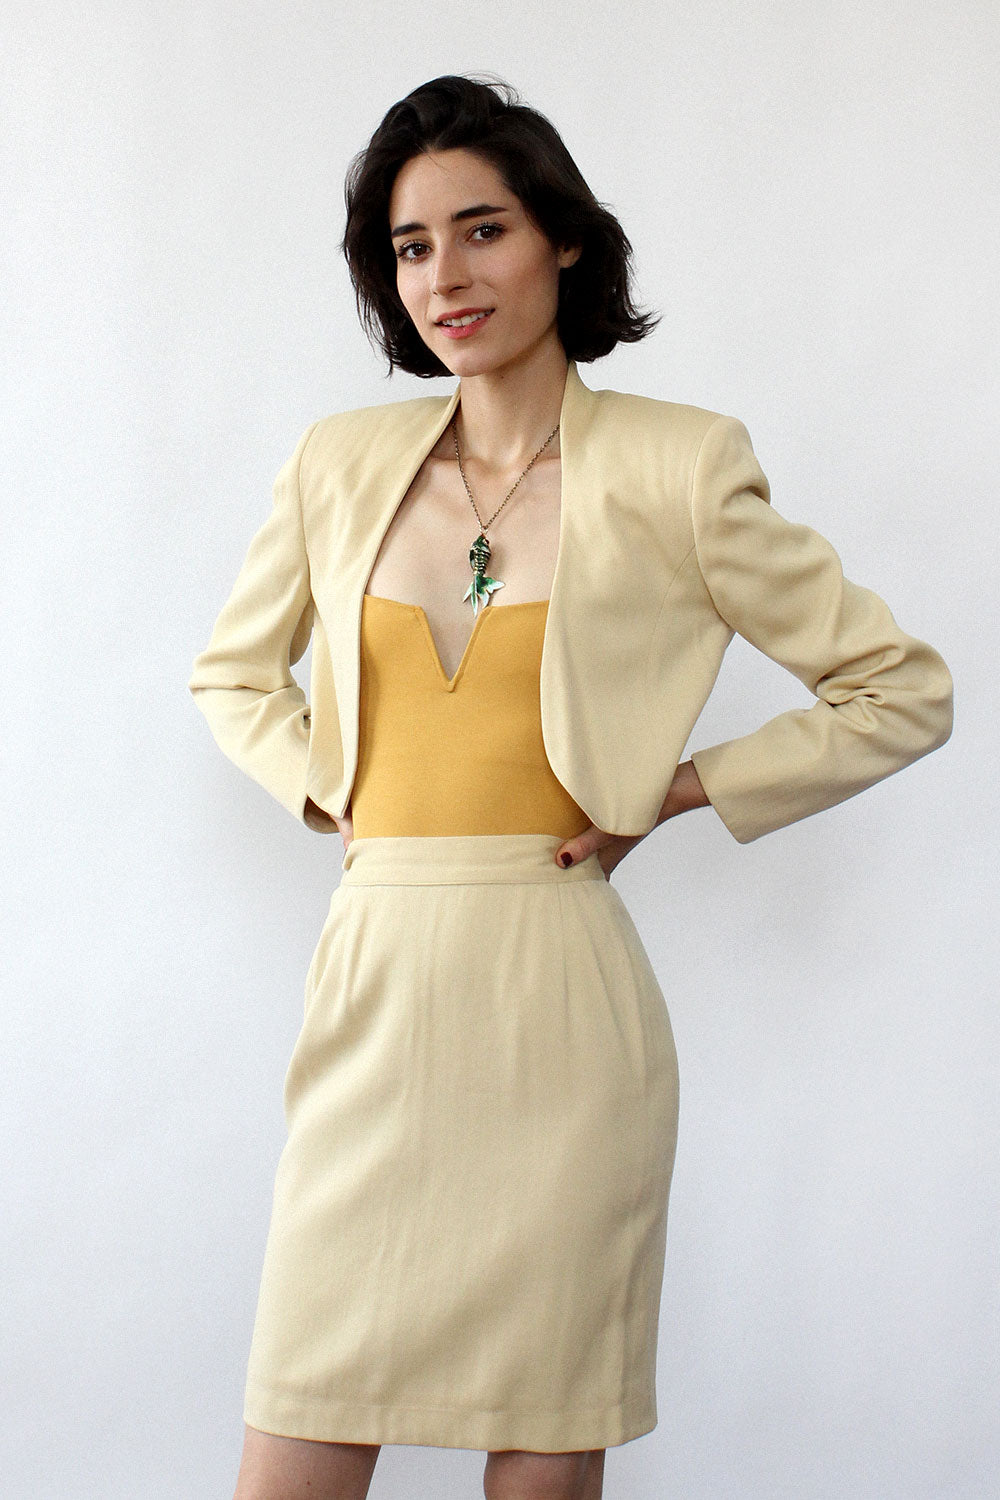 Ferragamo Blonde Skirt Suit XS